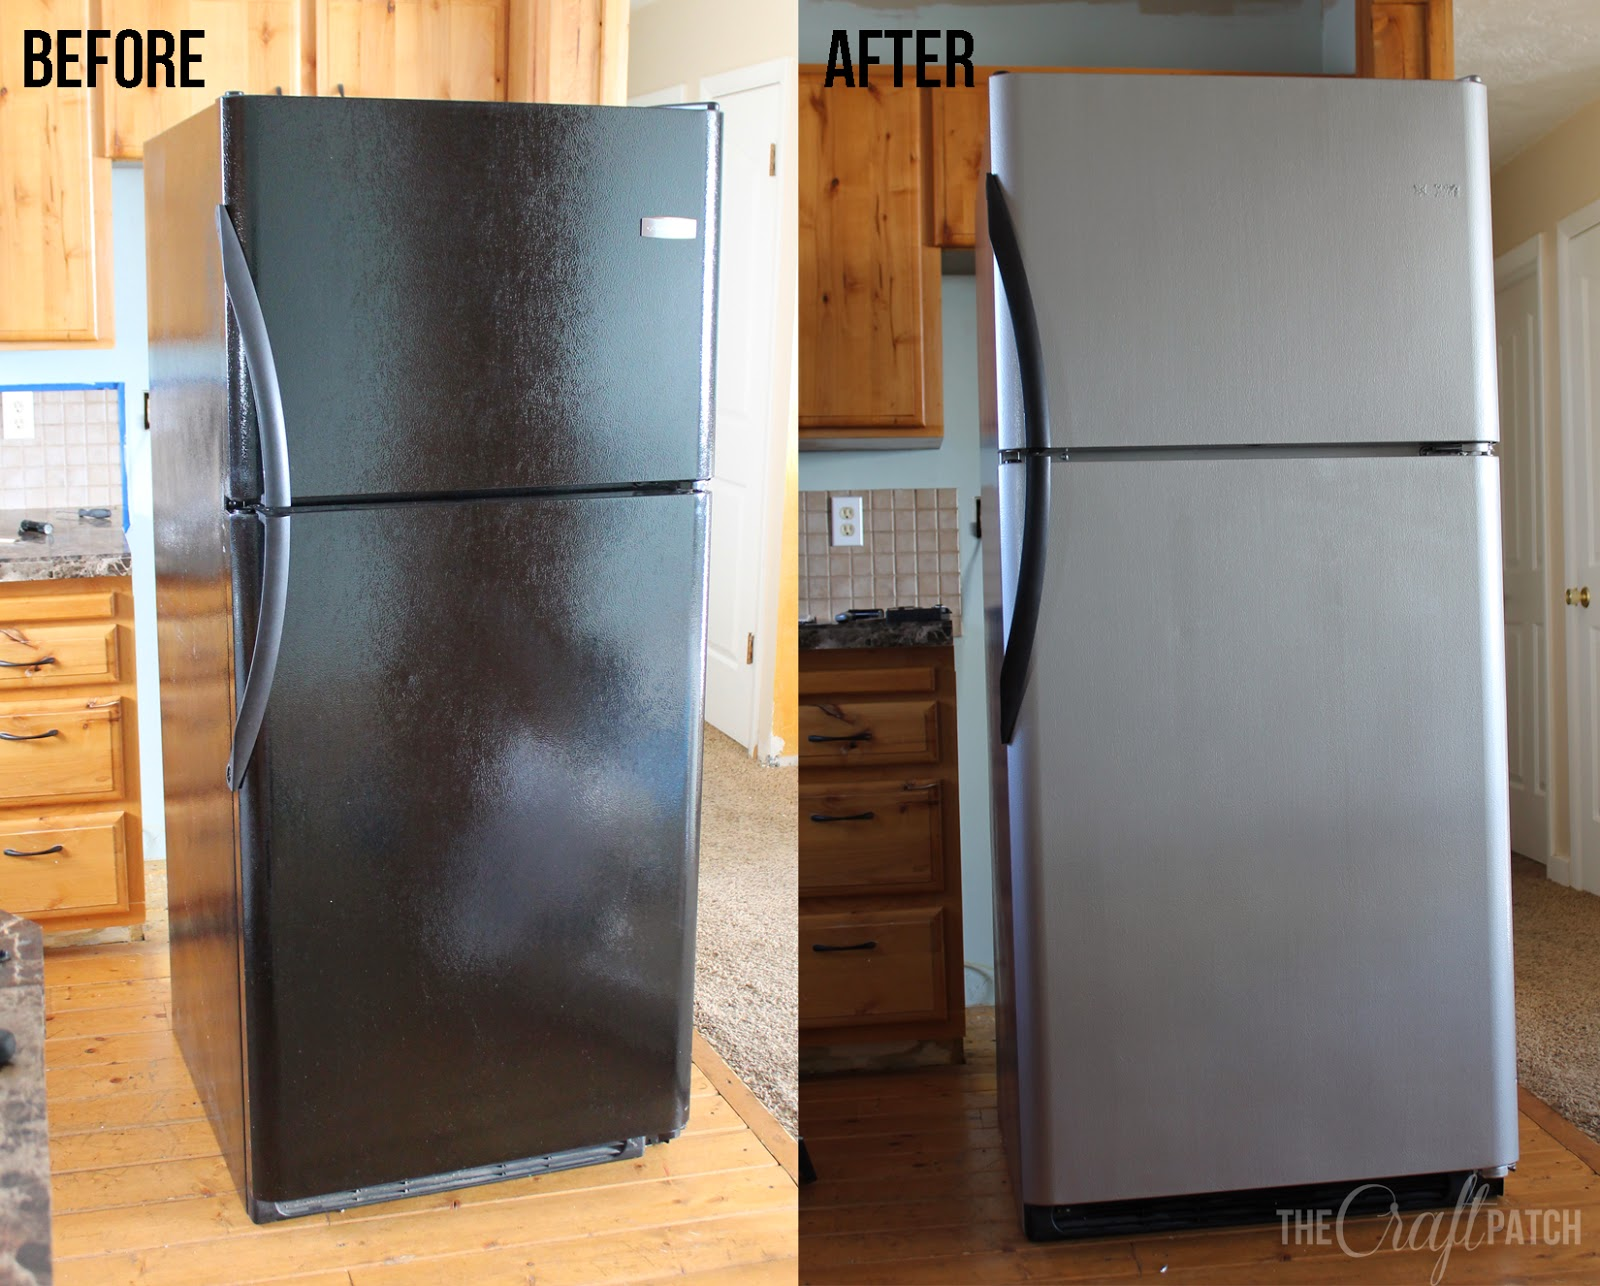 17 Gorgeous Ways to Update an Old Appliance - thecraftpatchblog.com